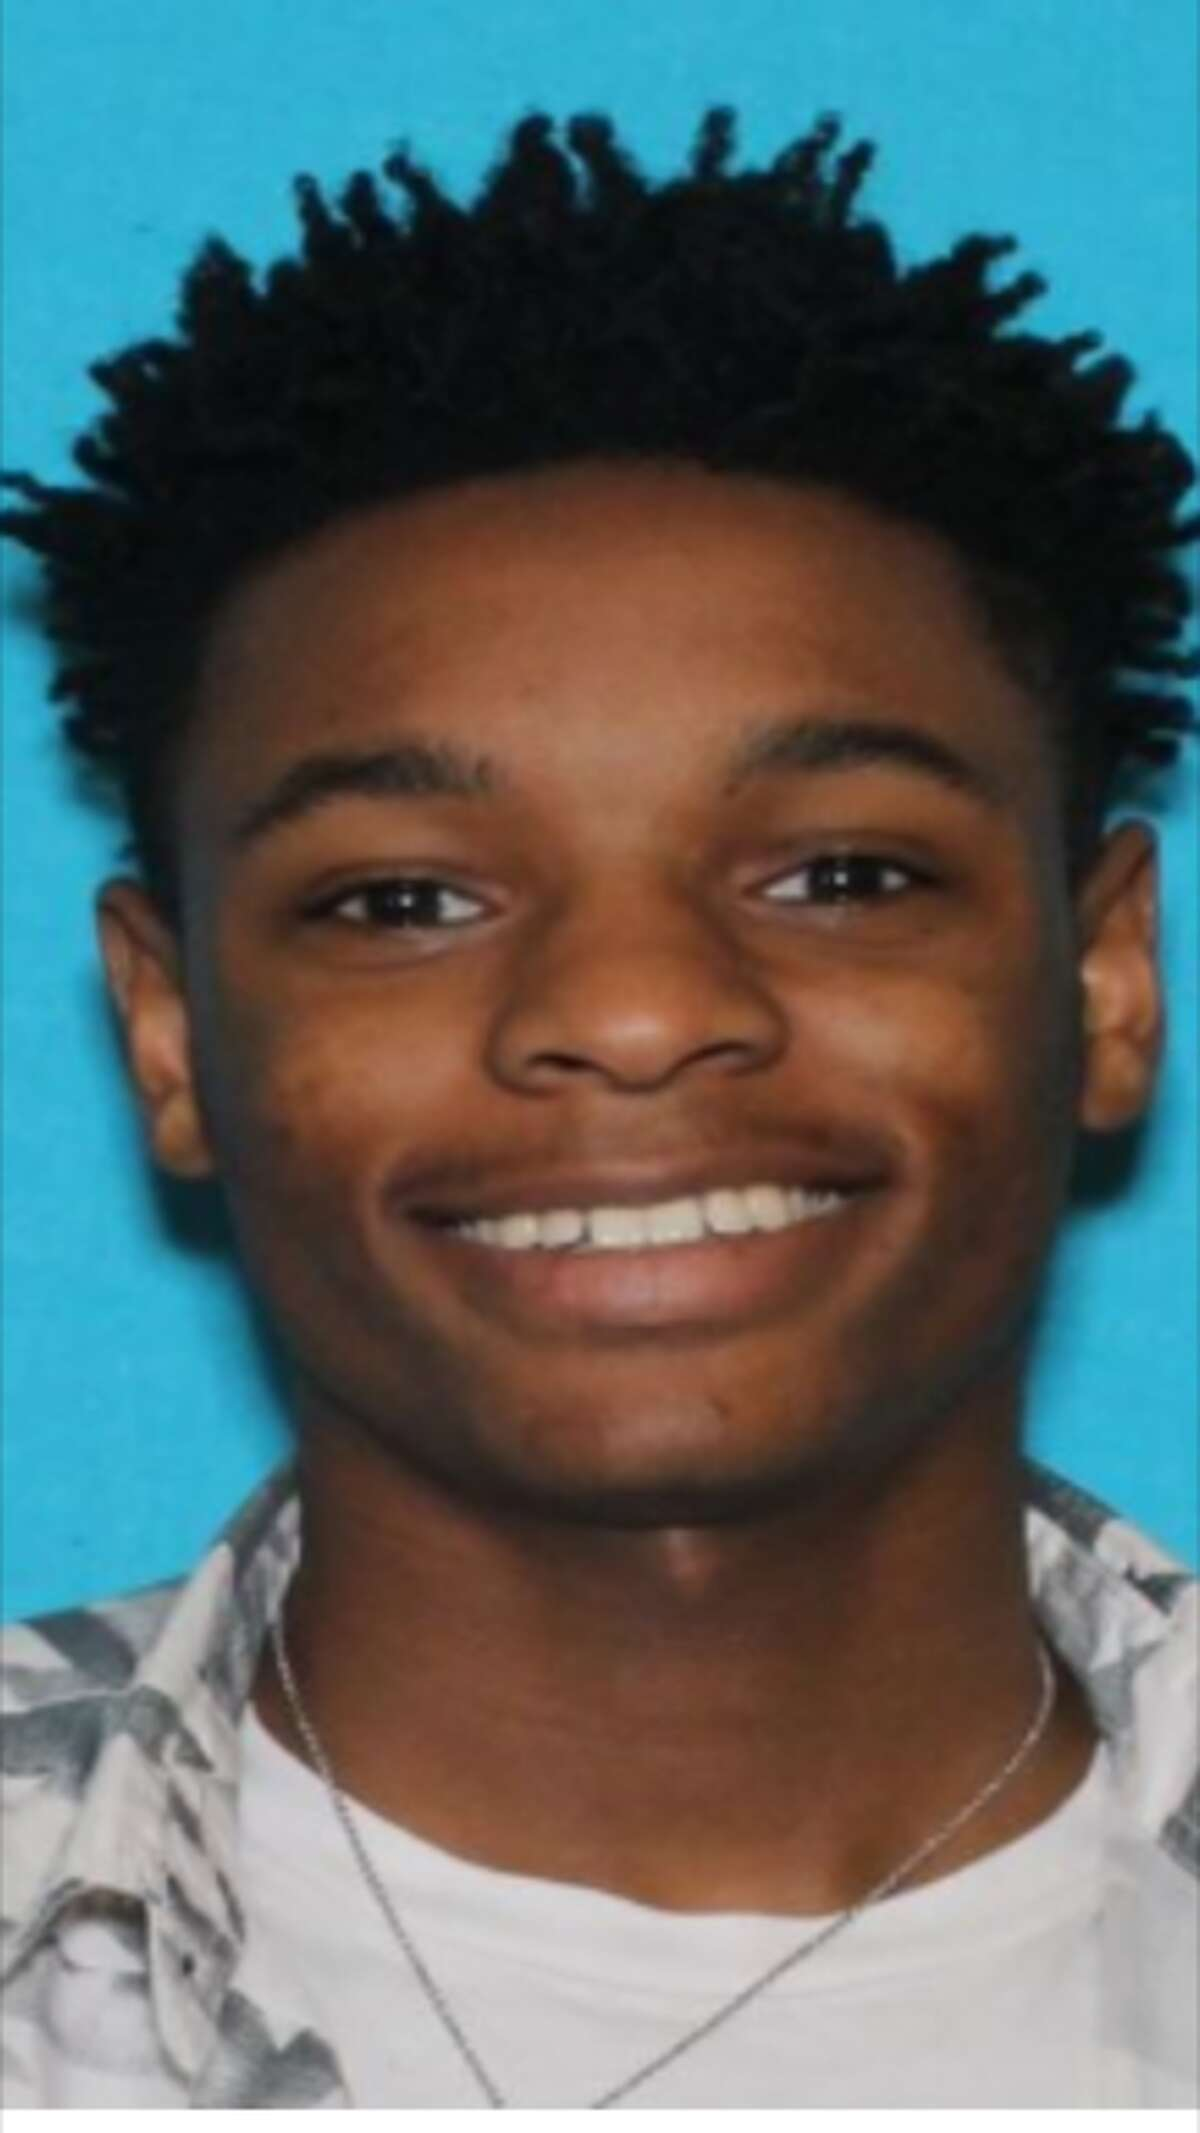 2. Suspect arrested On June 8, 2017 SAPD announced that Anton Jamail Harris, 18, has been charged with one count of aggravated sexual assault and that more charges were pending.